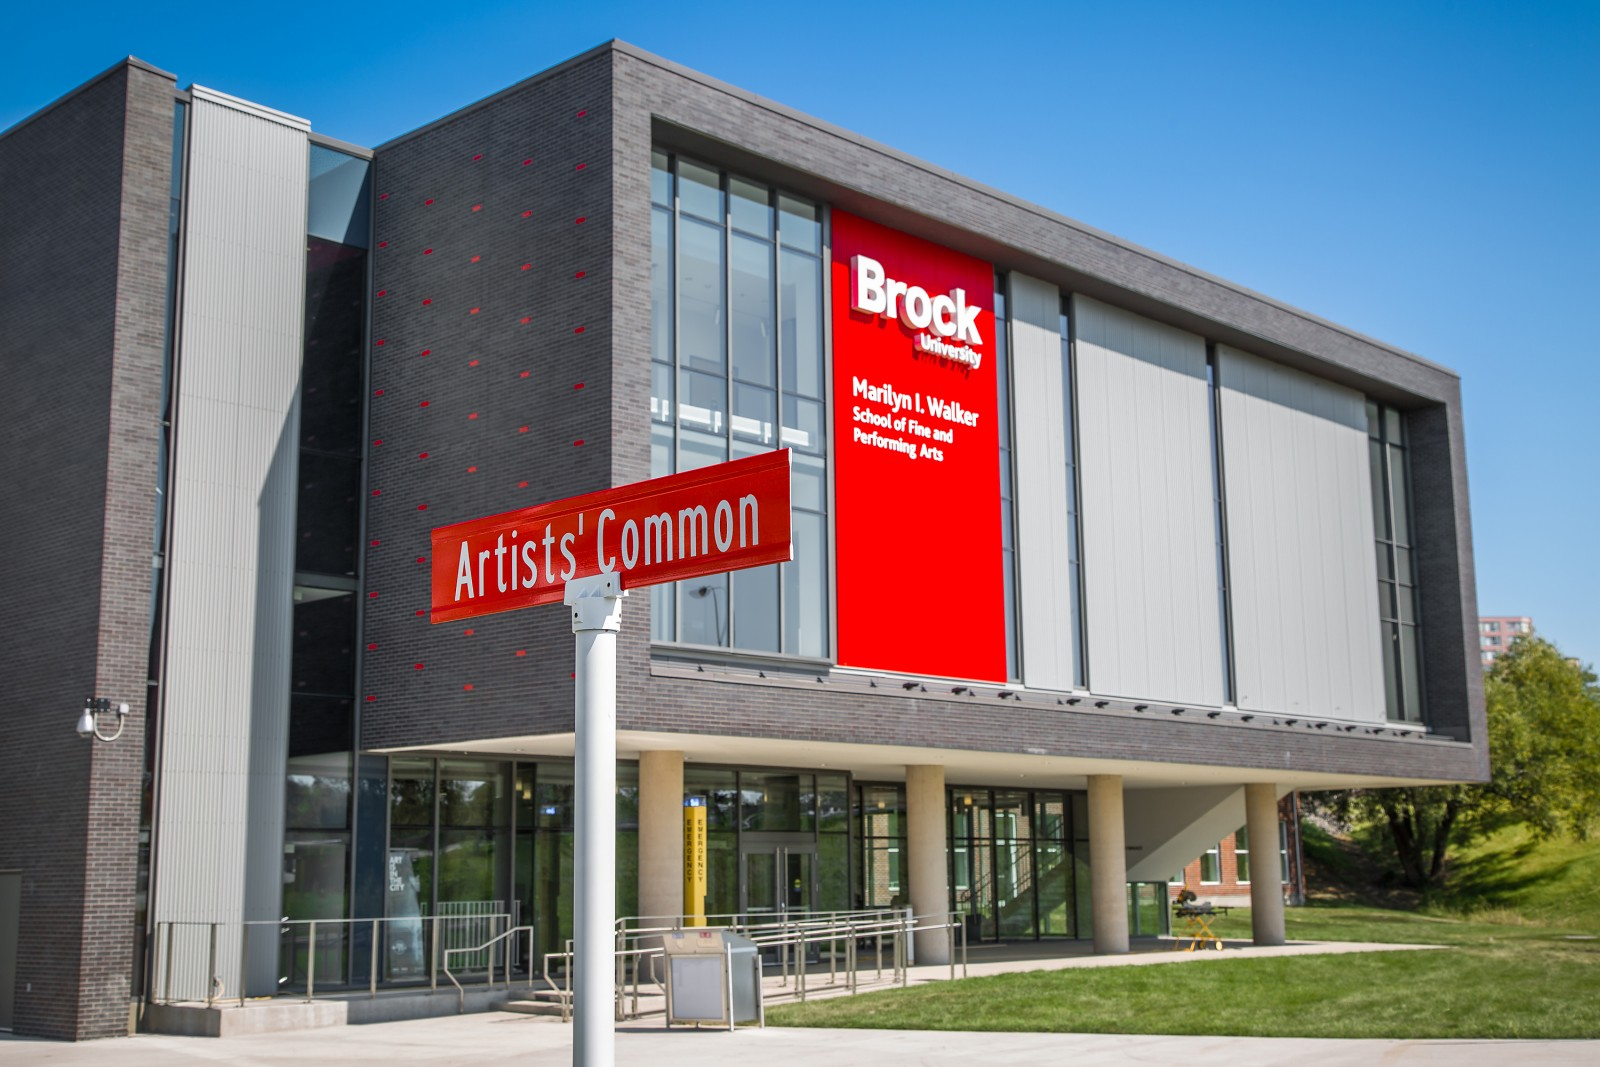 The street sign for Artists' Common can be seen in front of the new MIWSFPA.